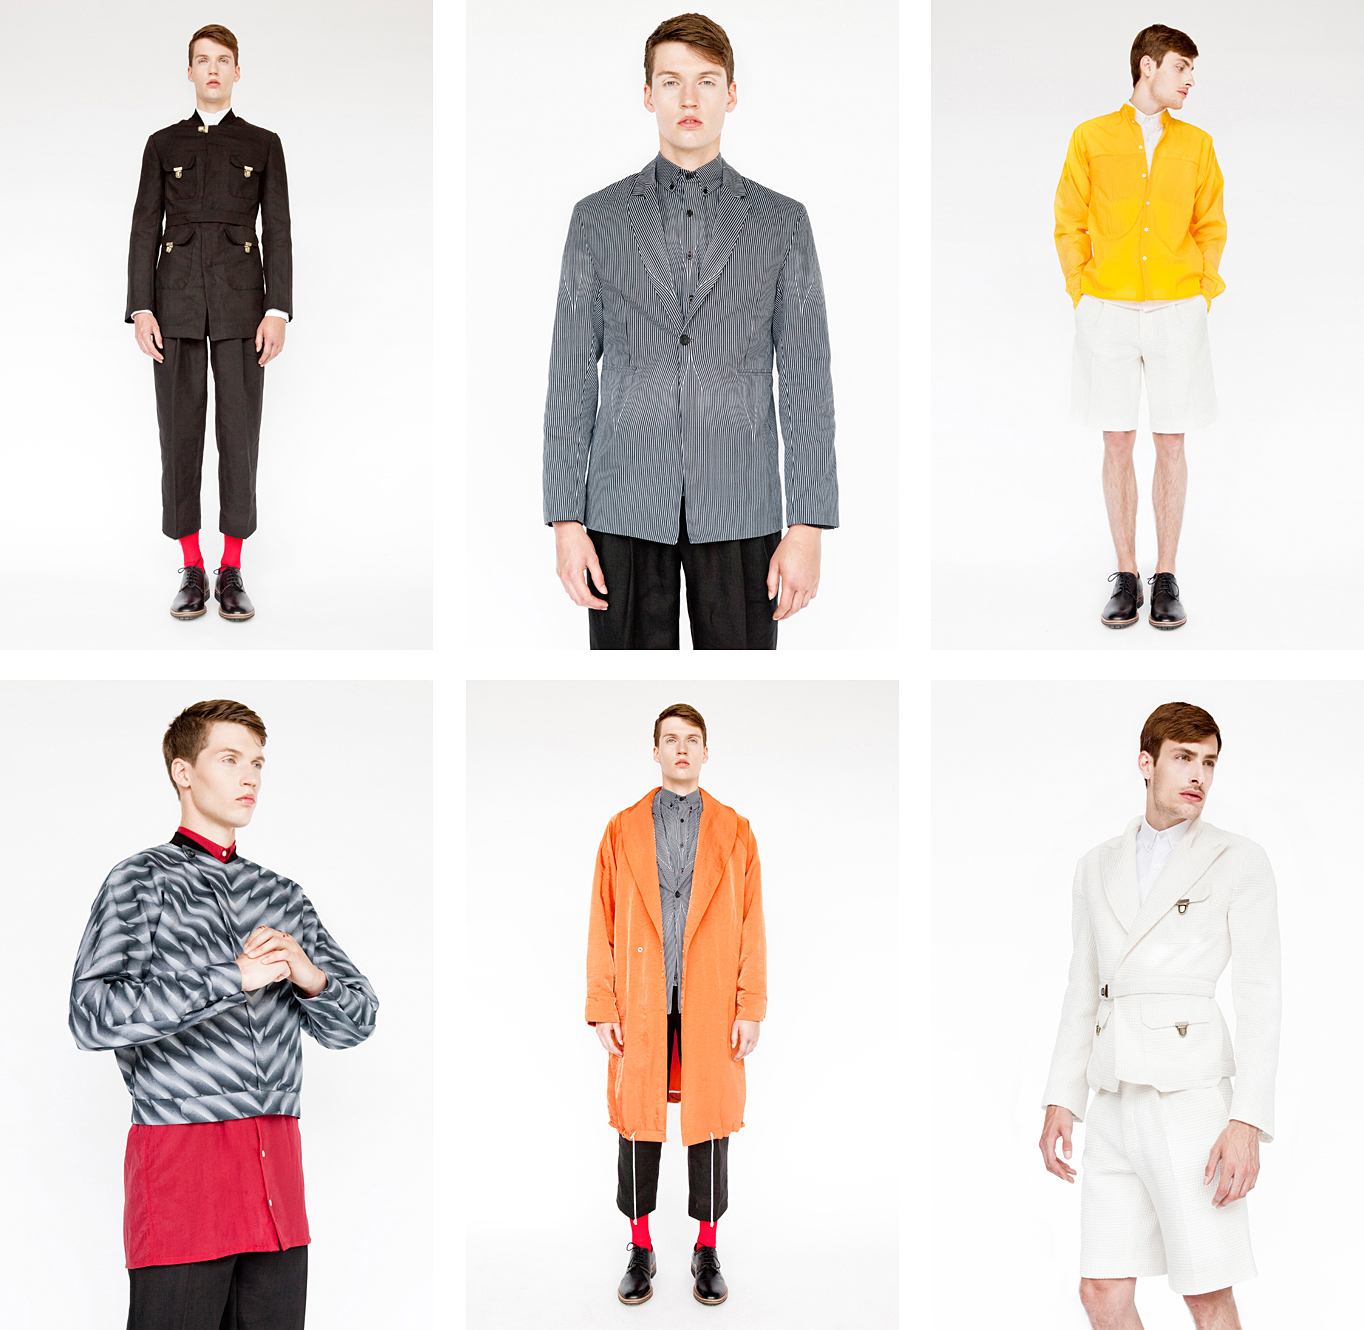 Marius Petrus SS13 collection